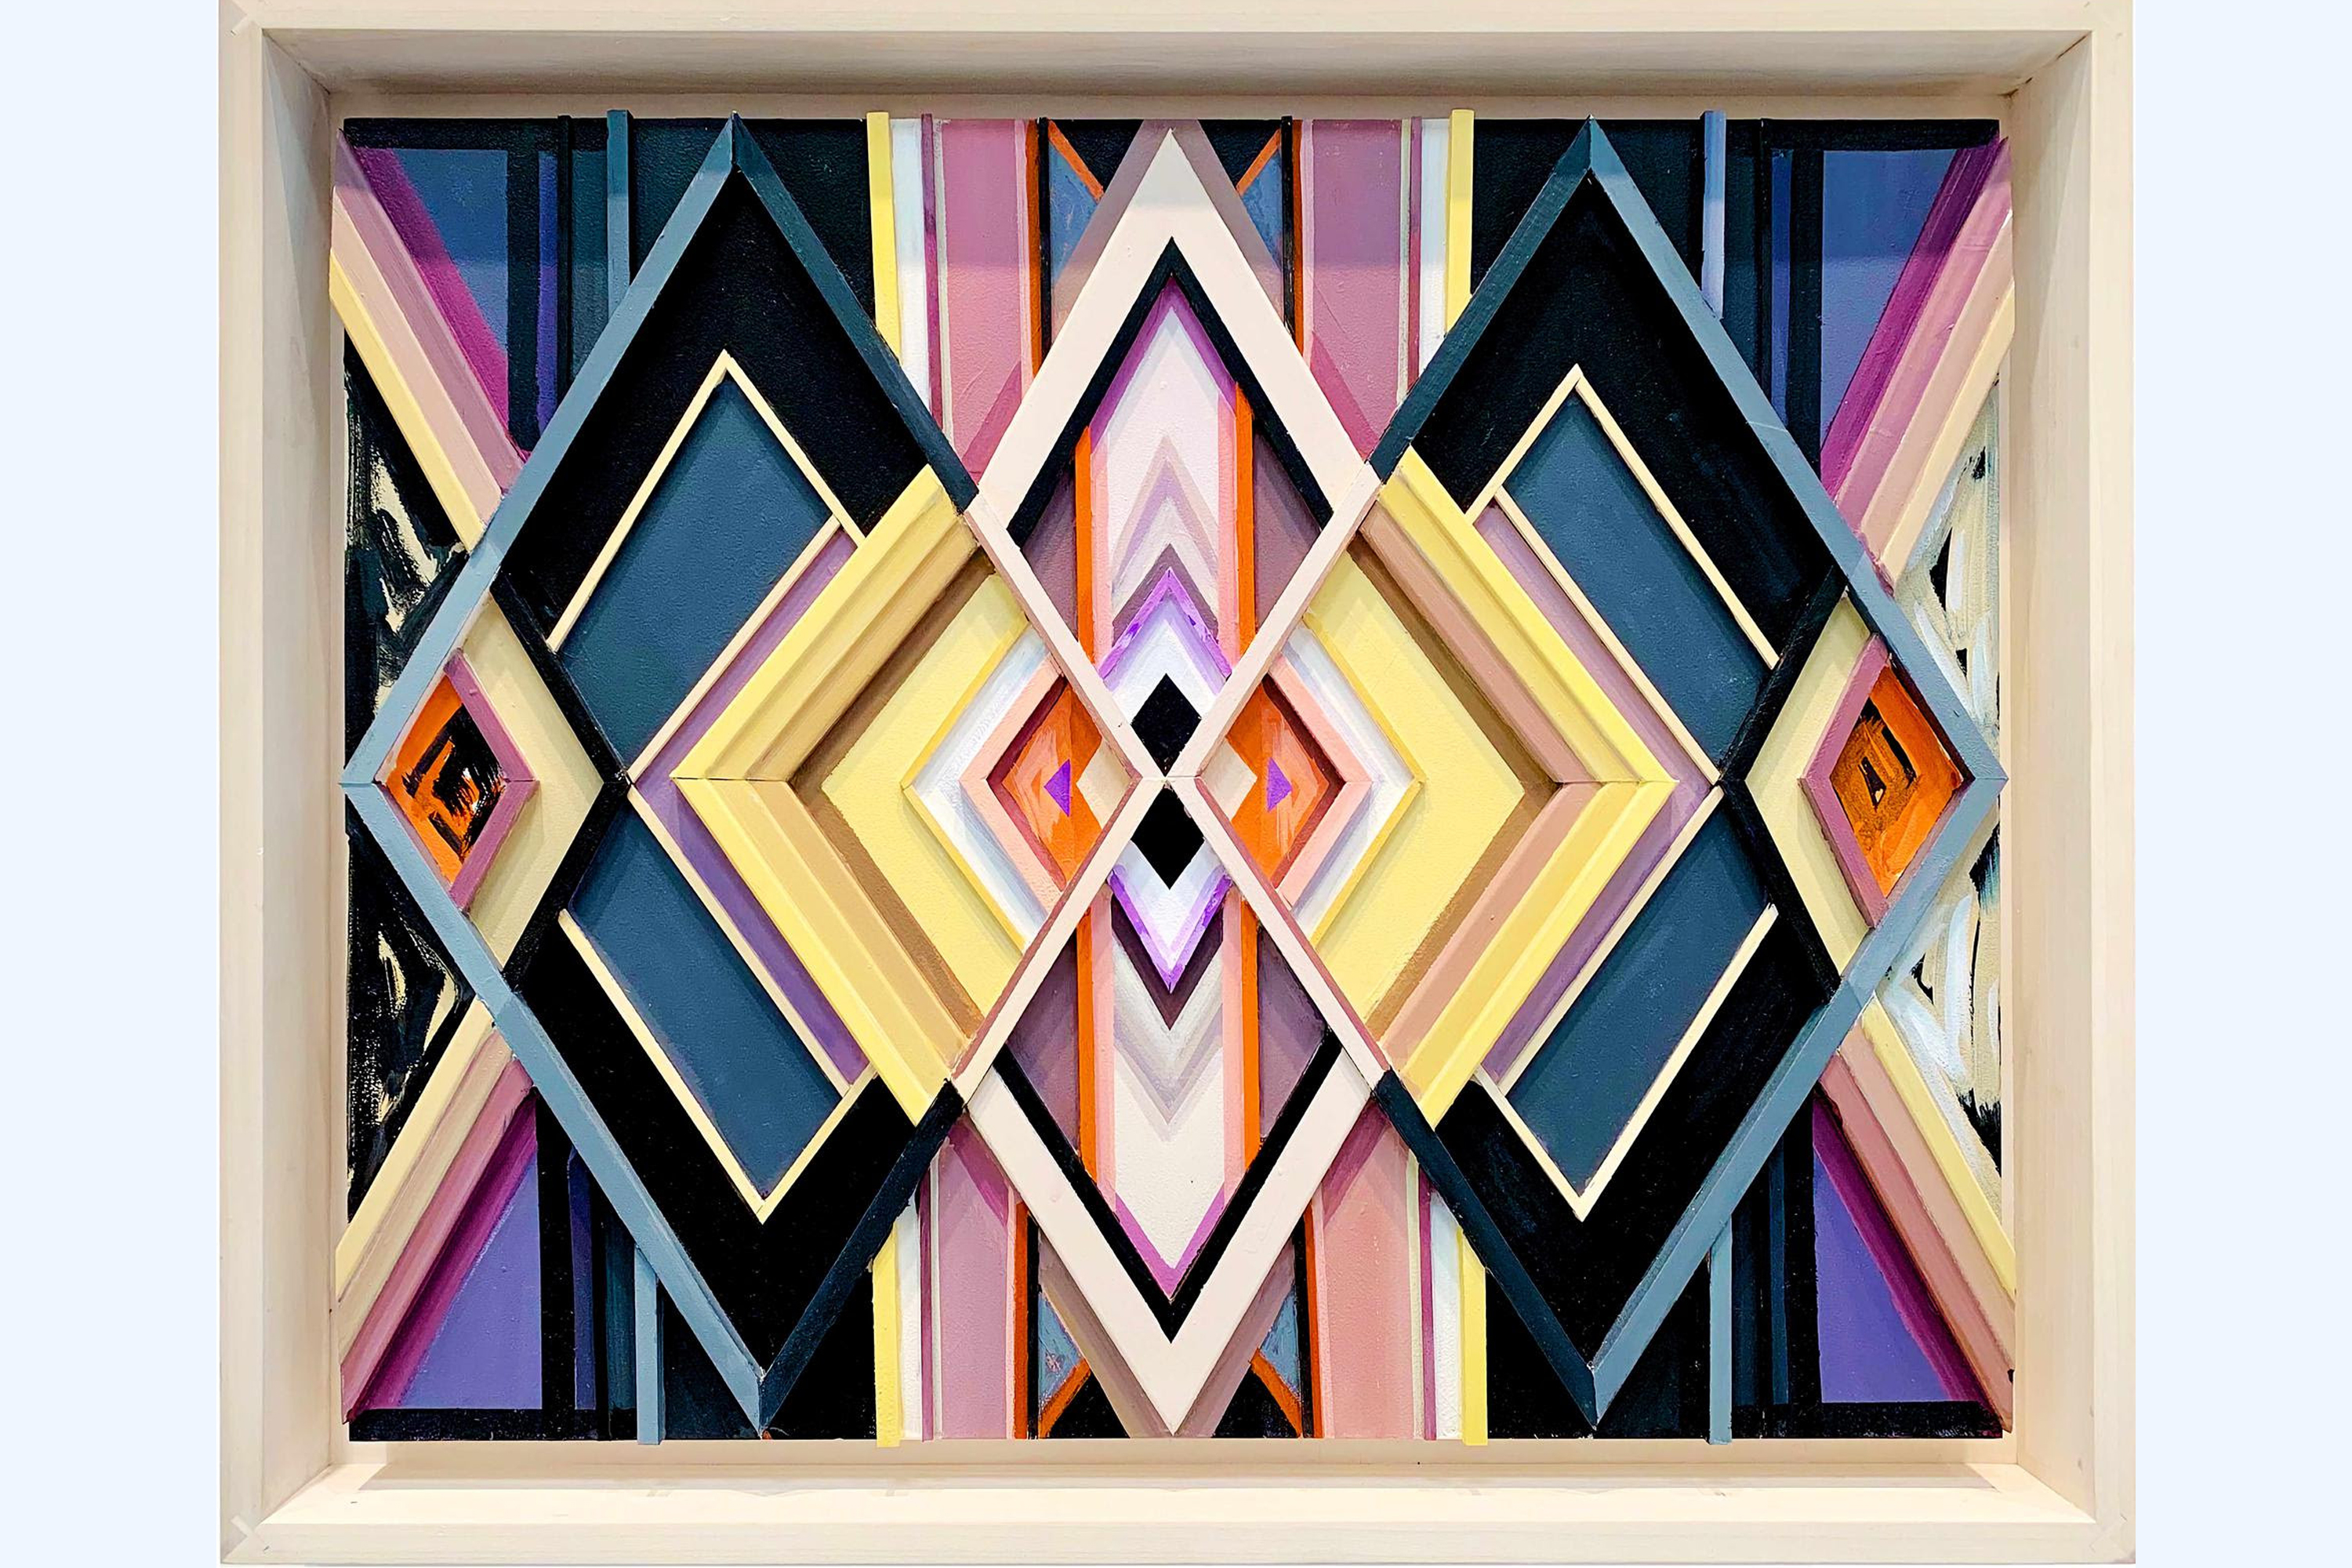 A series of concentric, three-dimensional diamond arranged within a frame. The overlapping shapes are variously colored to create a prism or kaleidoscope effect. The colors are dark teal, butter yellow, lilac, black, orange, and mauve.